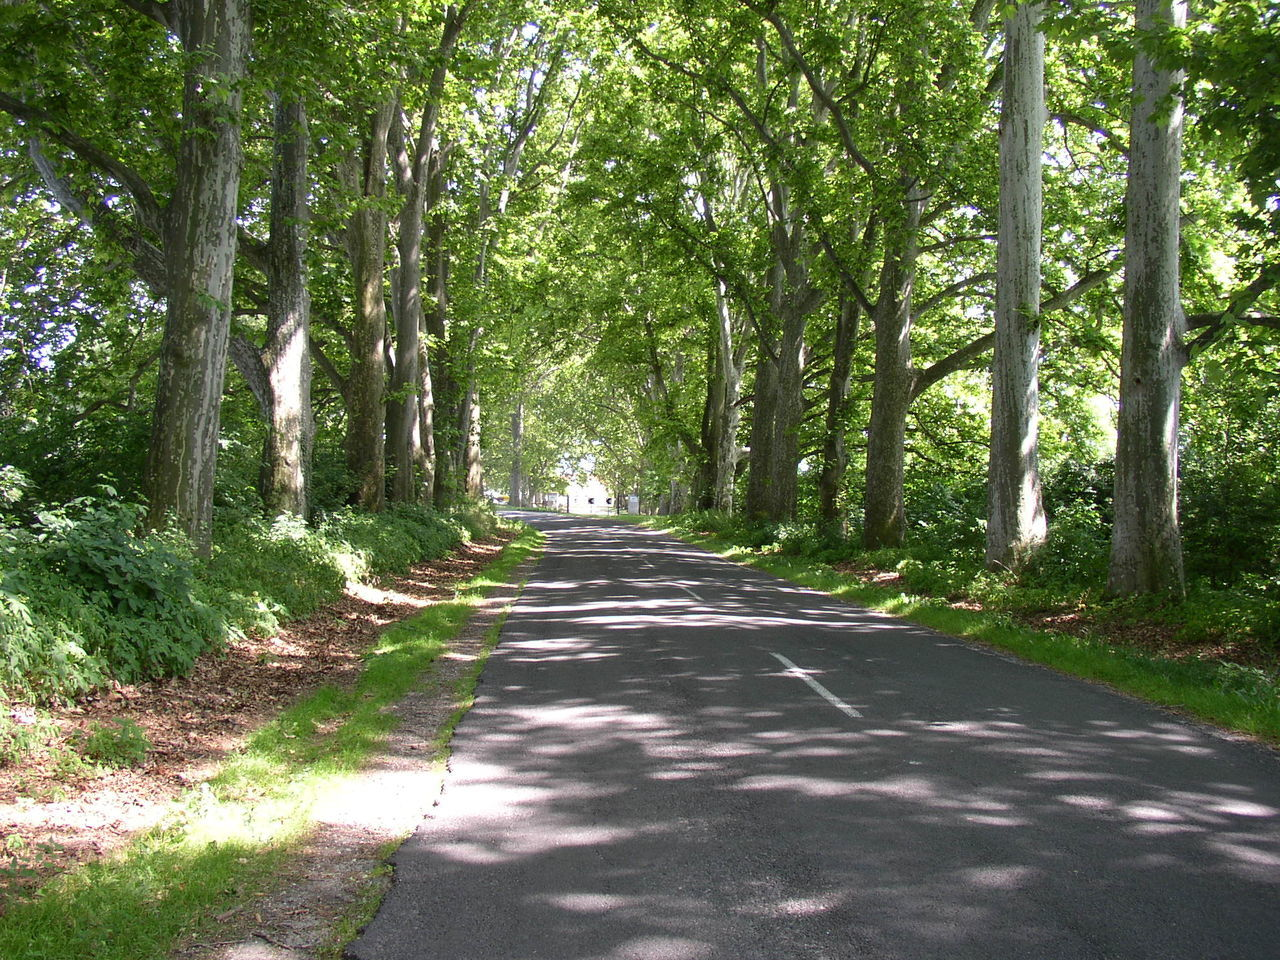 tree, the way forward, road, nature, forest, growth, tranquility, outdoors, tranquil scene, day, tree trunk, single lane road, scenics, no people, beauty in nature